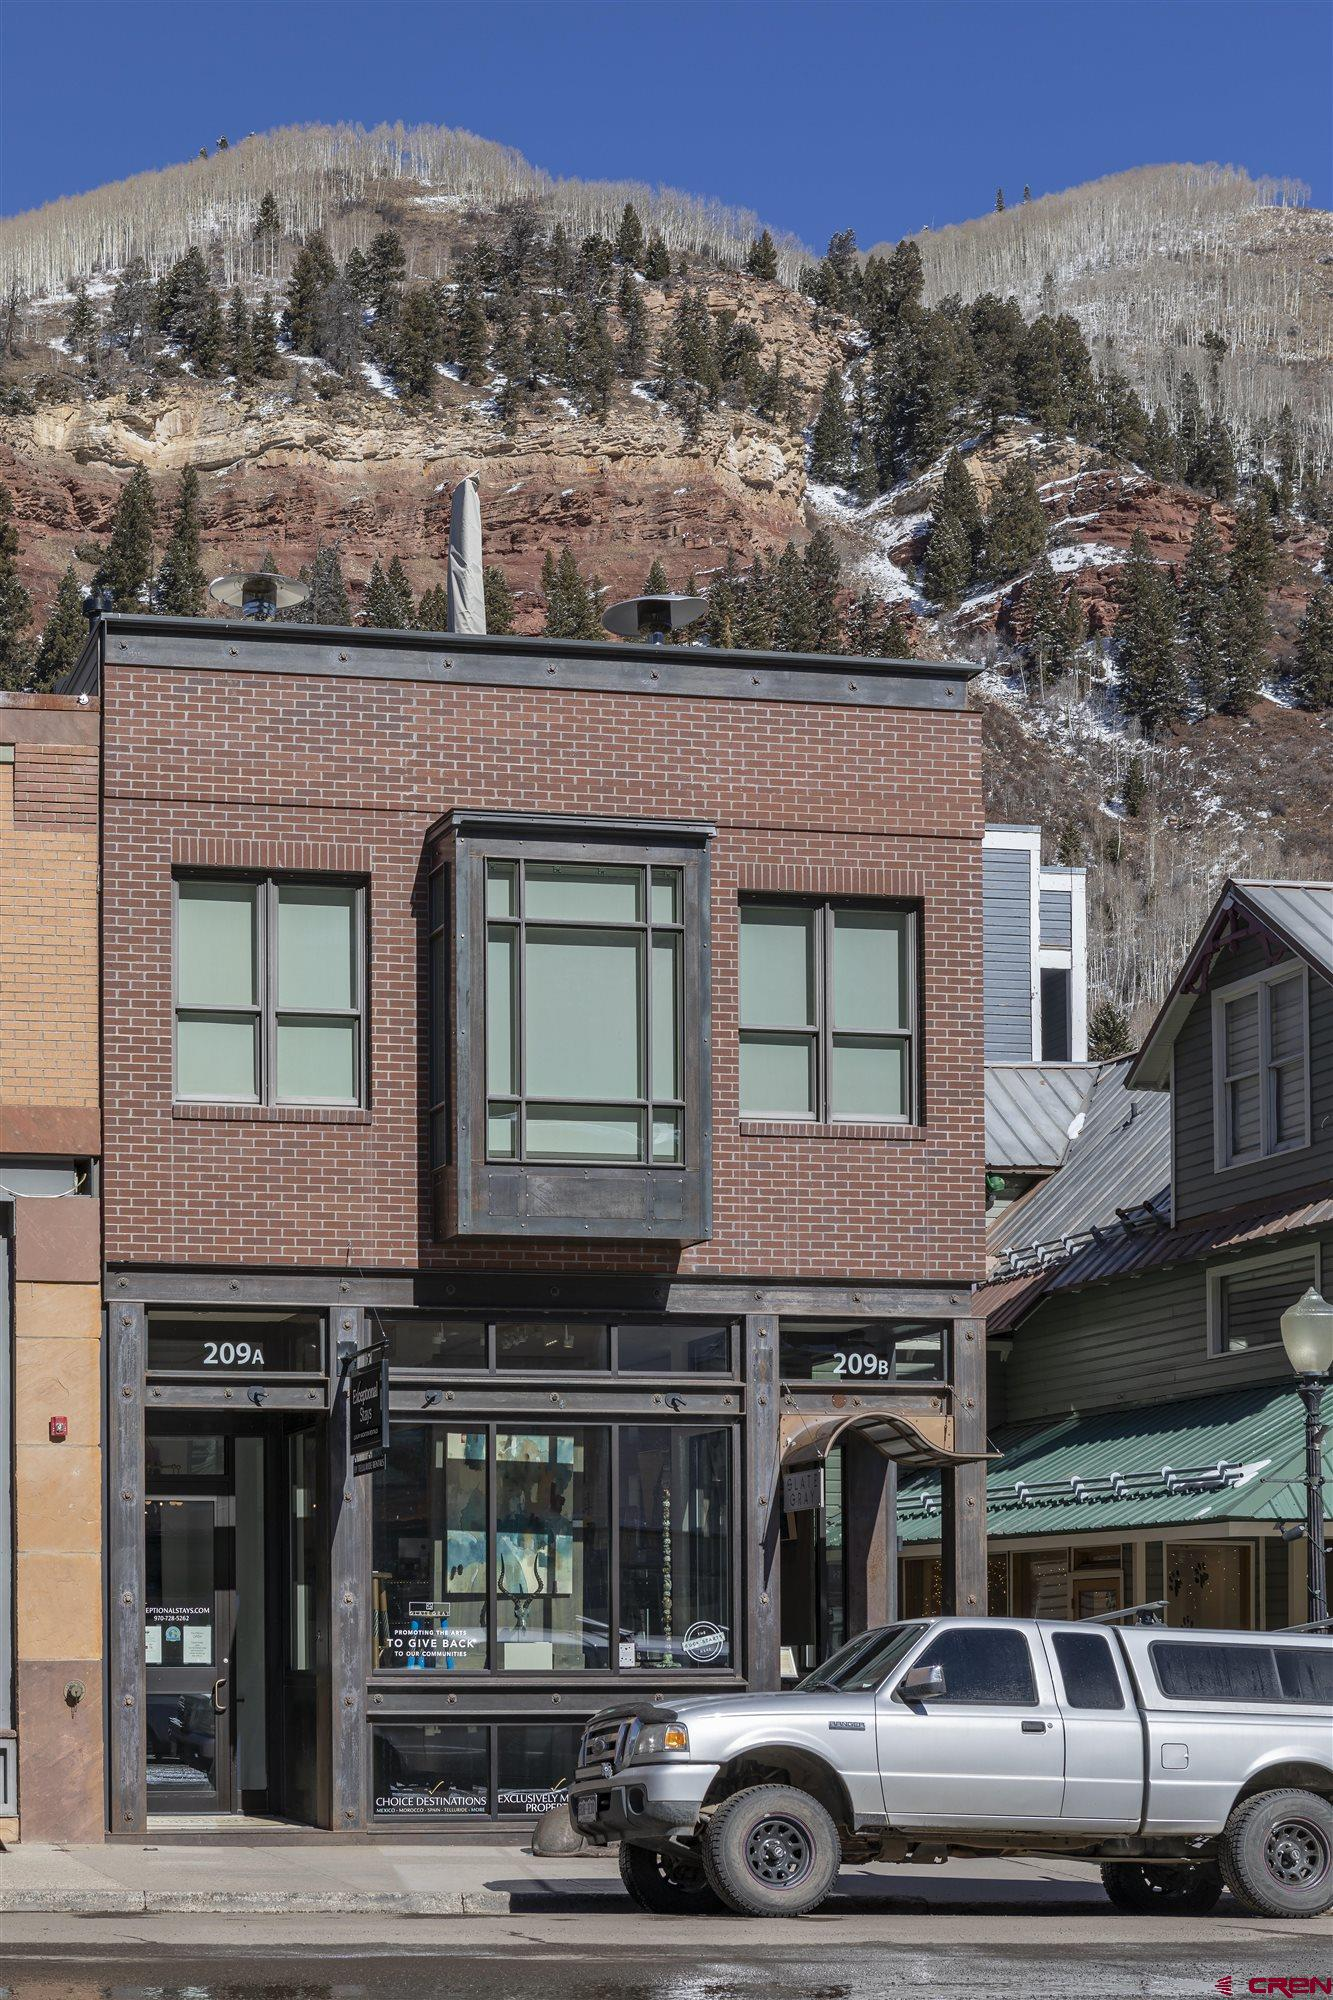 A unique opportunity to own a building on historic Colorado Ave in downtown Telluride Colorado. This 4 unit building constructed within the last 10 years has 360 views from the large patio of the 3900 sqft penthouse condo. Experience the incredible views of of Bear Creek, the box canyon, Telluride Ski Resort, and the Valley Floor. The 4 bedroom luxury 2 story penthouse sits above two high end commercial spaces with solid rental history and great tenants. The building is in the ultimate location for the Telluride downtown area and is complimented with 4 parking spots for added convenience .